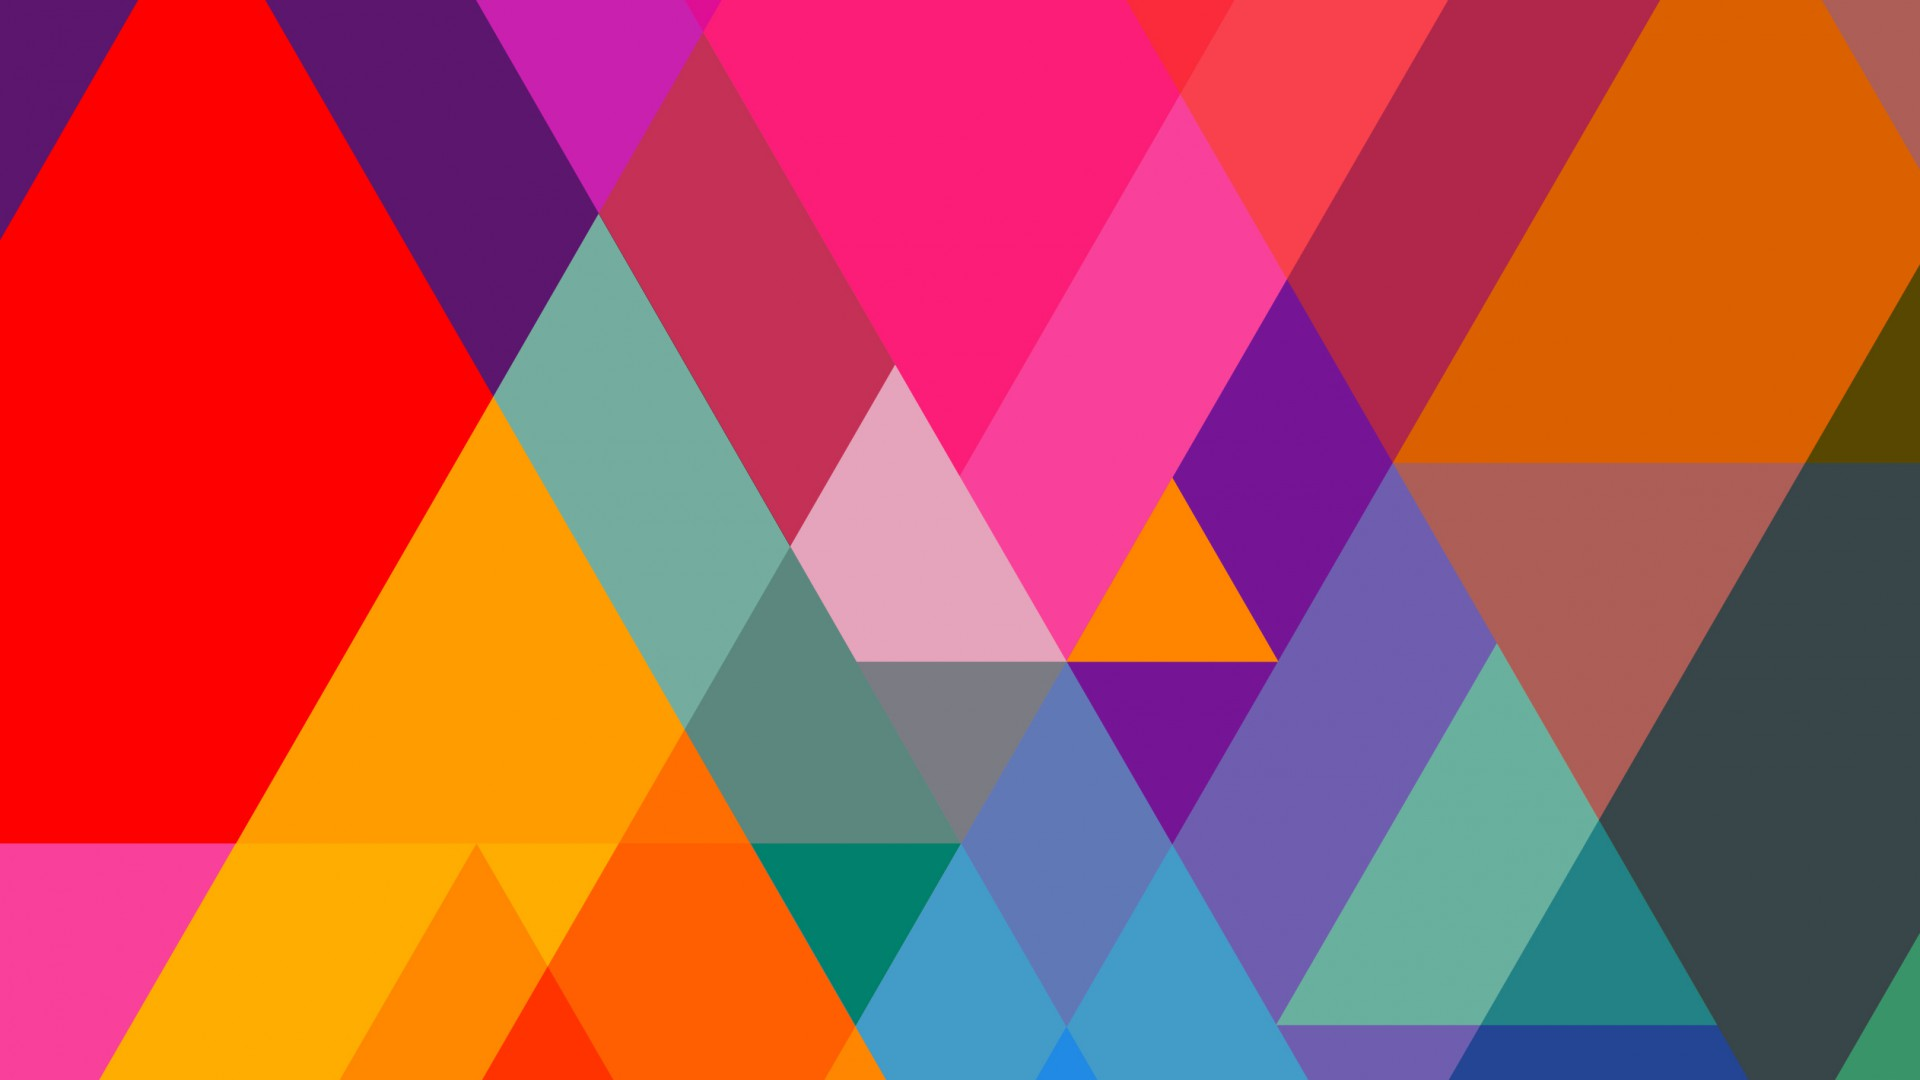 полигон, 4k, 5k, цветной, андроид, фон, polygon, 4k, 5k wallpaper, iphone wallpaper, triangle, background, orange, red, blue, pattern (horizontal)